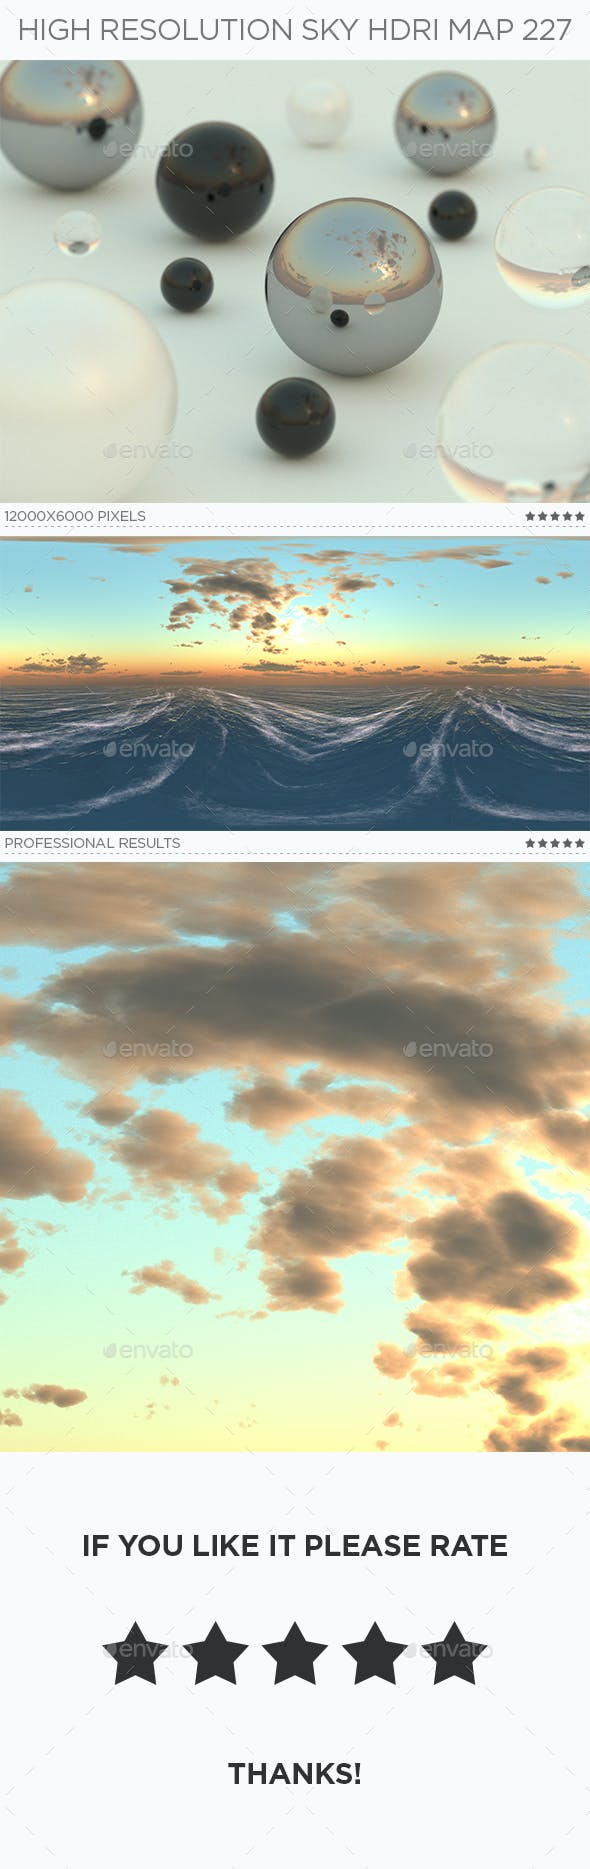 High Resolution Sky HDRi Map 227 - 3DOcean Item for Sale